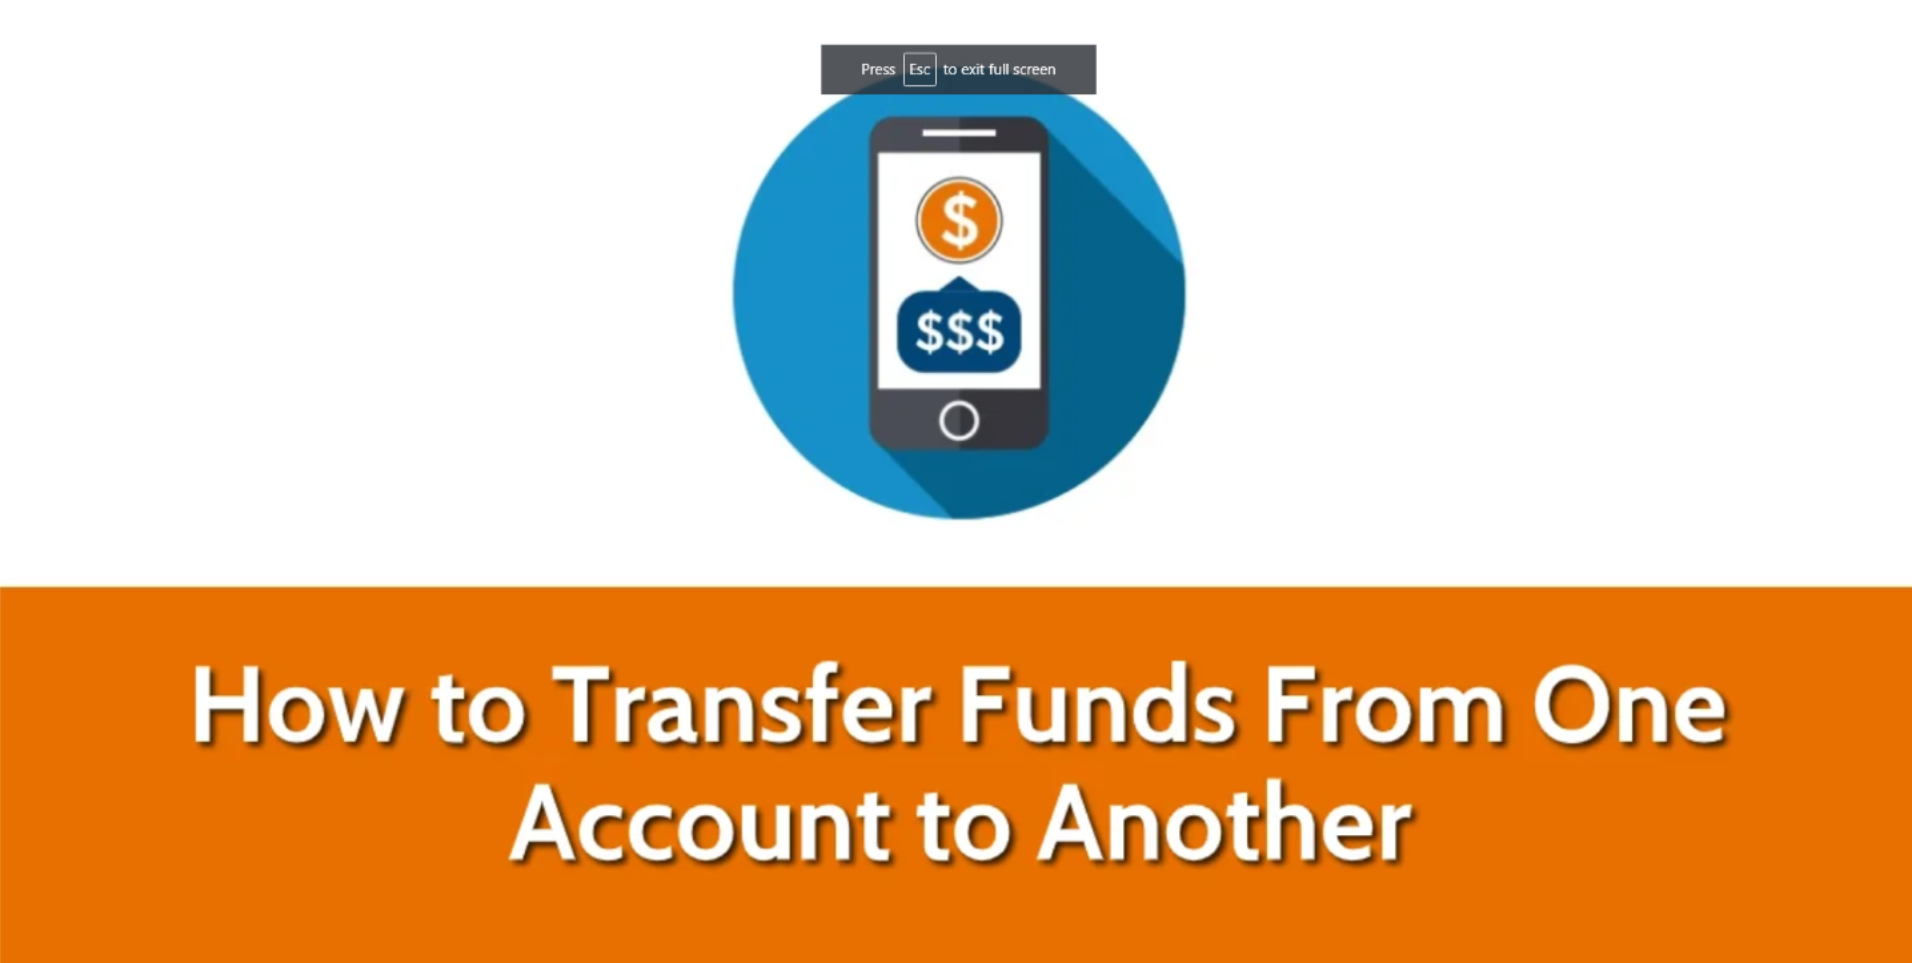 Bank to Bank Transfers